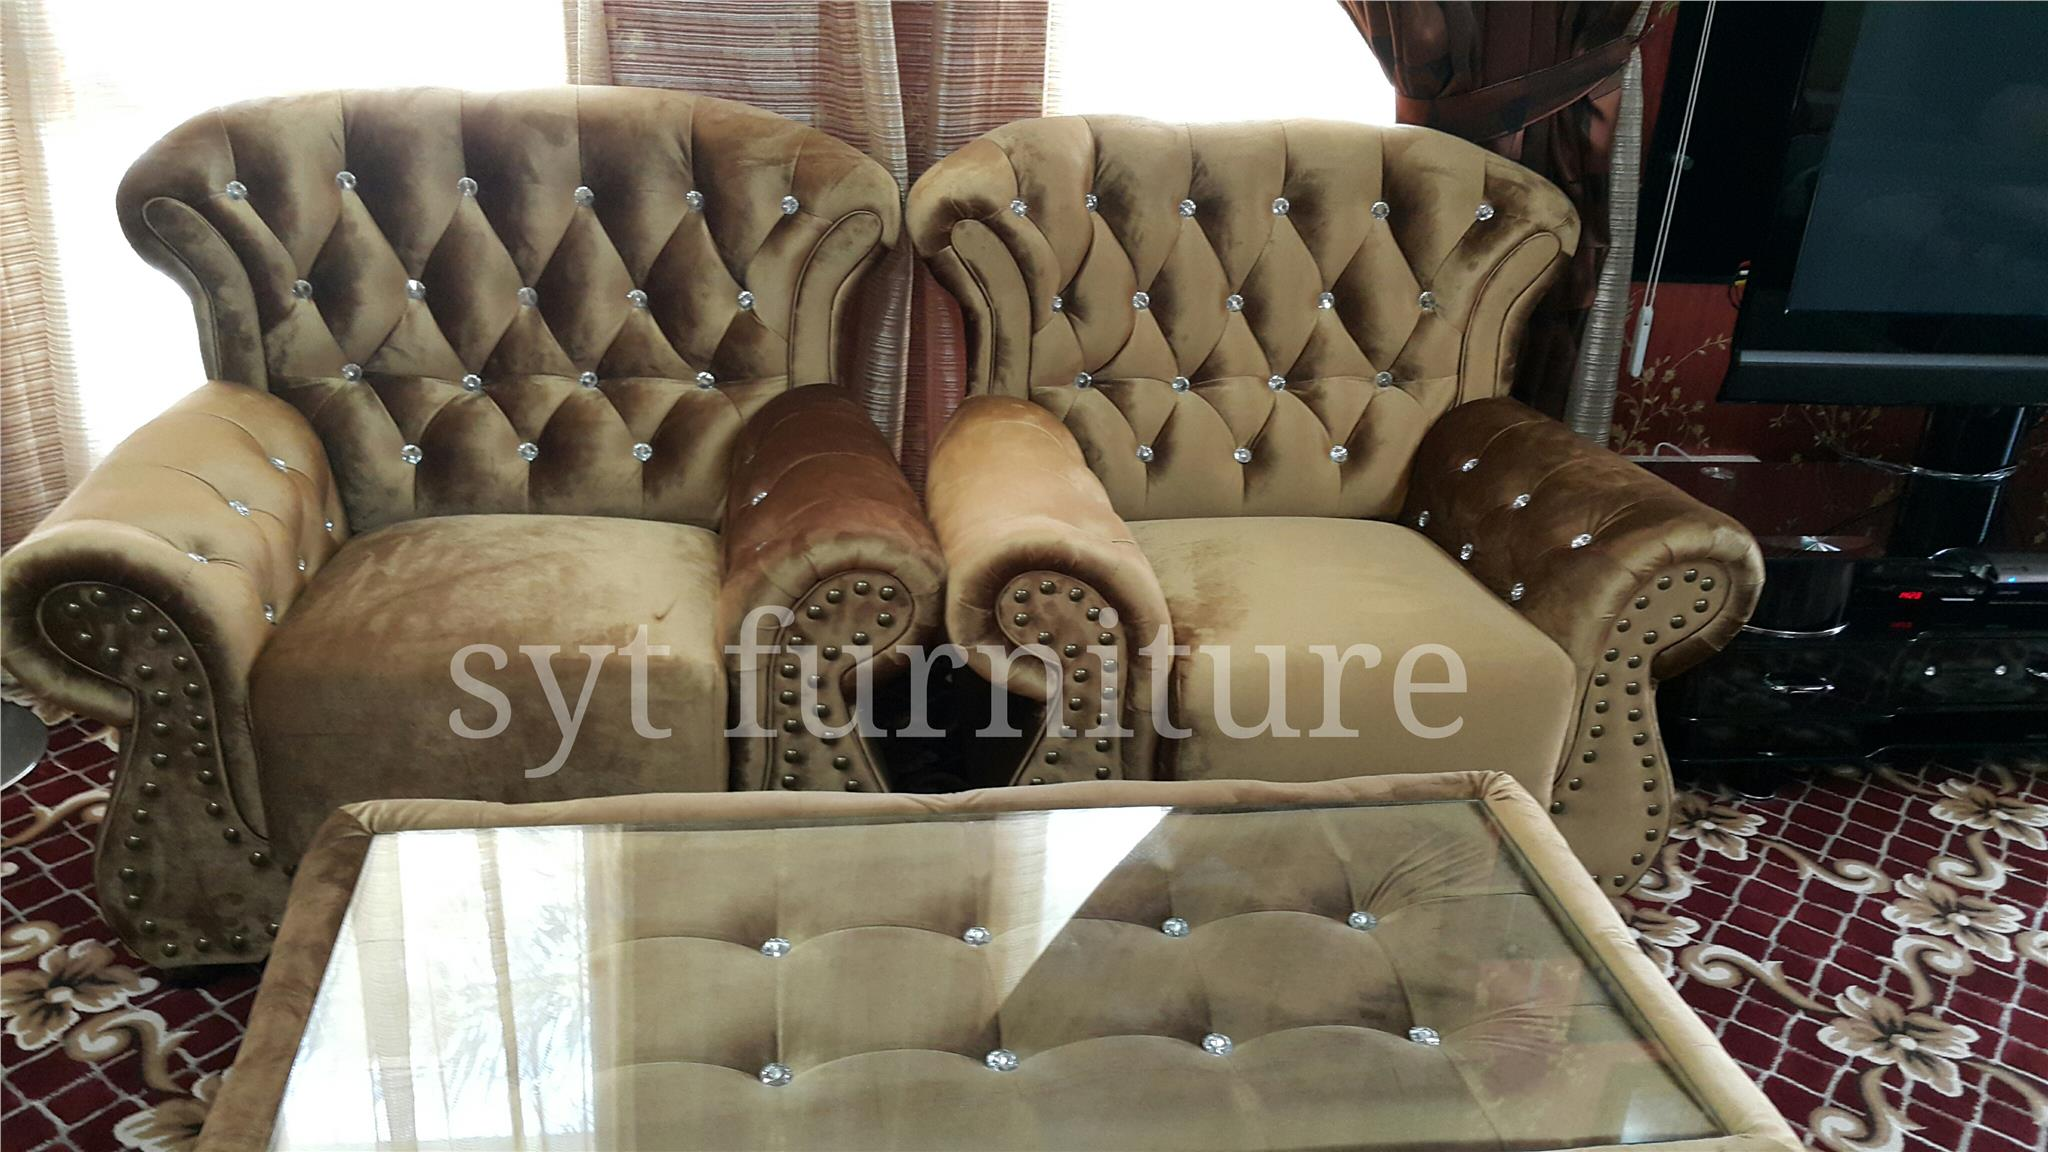 chesterfield sofa 1 2 3seater velve end 6 10 2016 11 29 AM